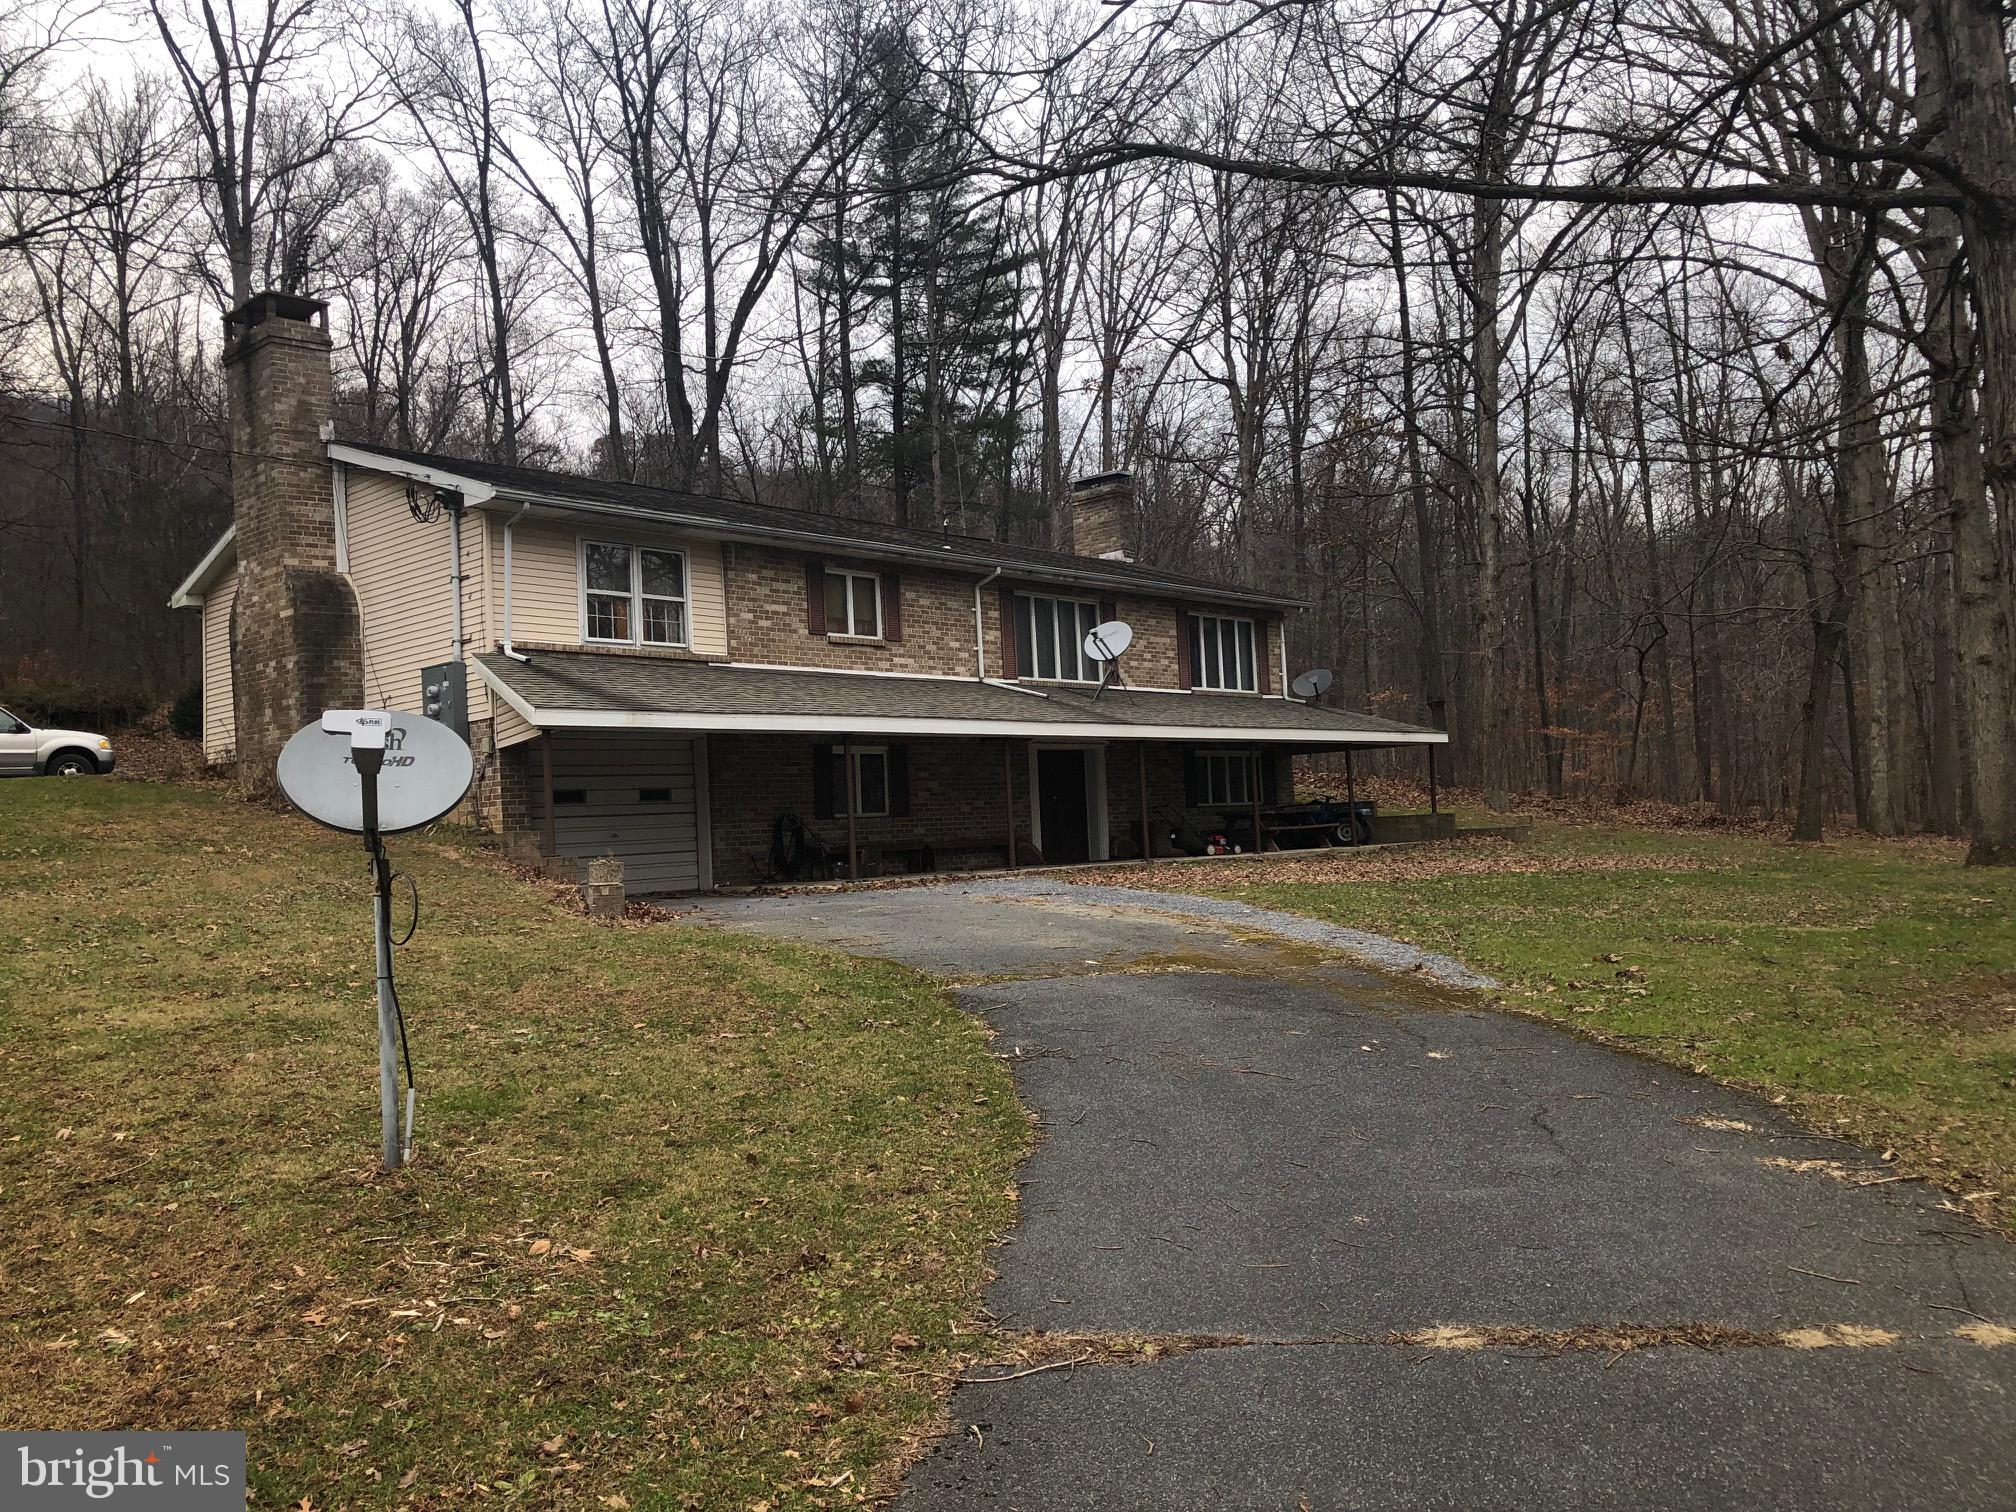 1093 BEAR VALLEY ROAD, FORT LOUDON, PA 17224